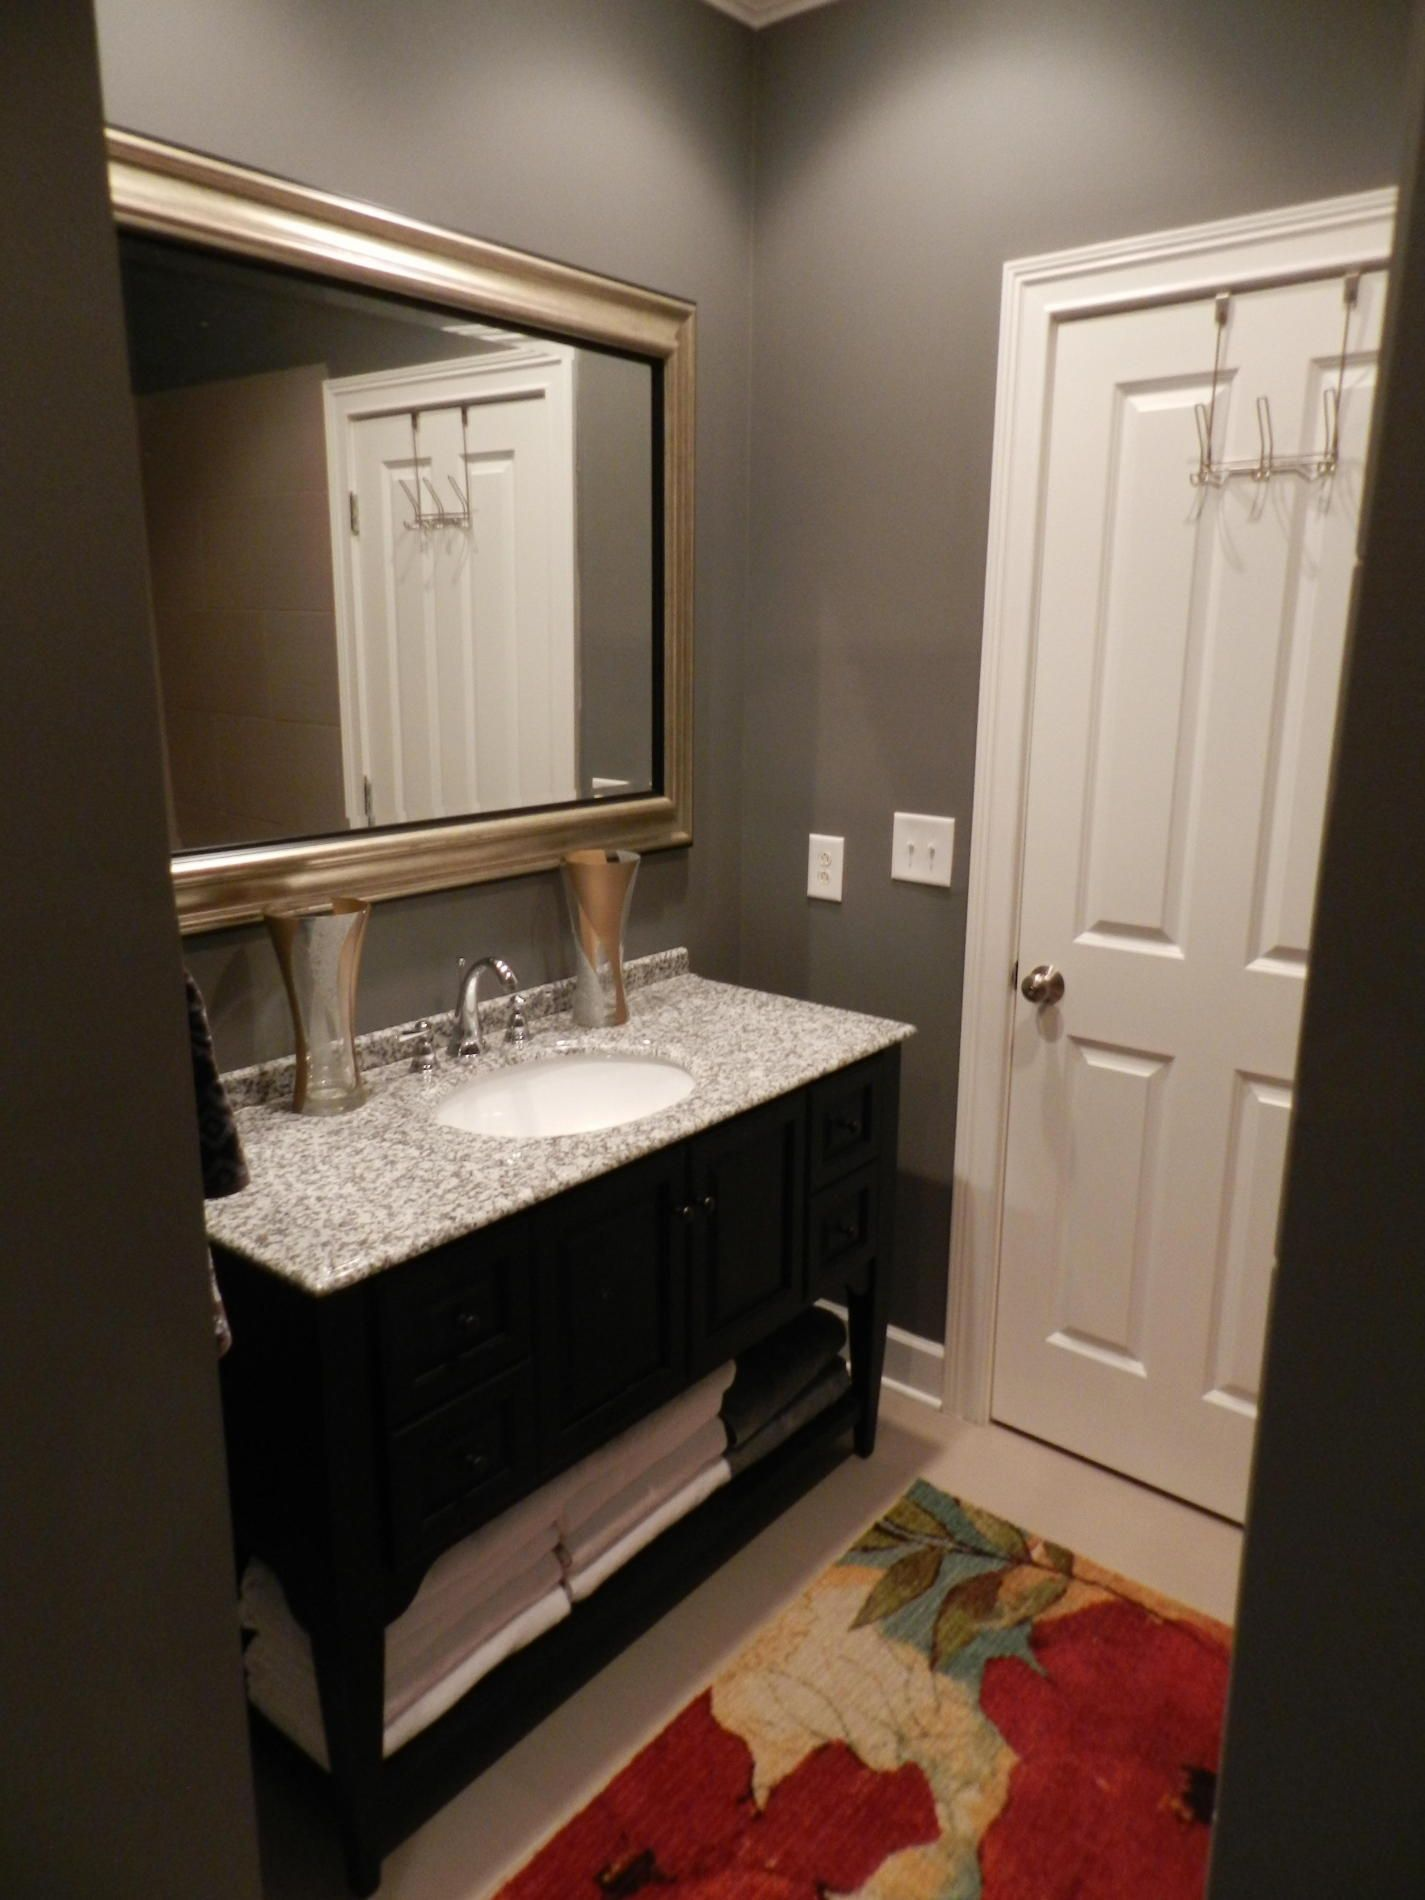 Besf Of Ideas Remodel My Bathroom How To Remodel A Modern - How to redo my bathroom